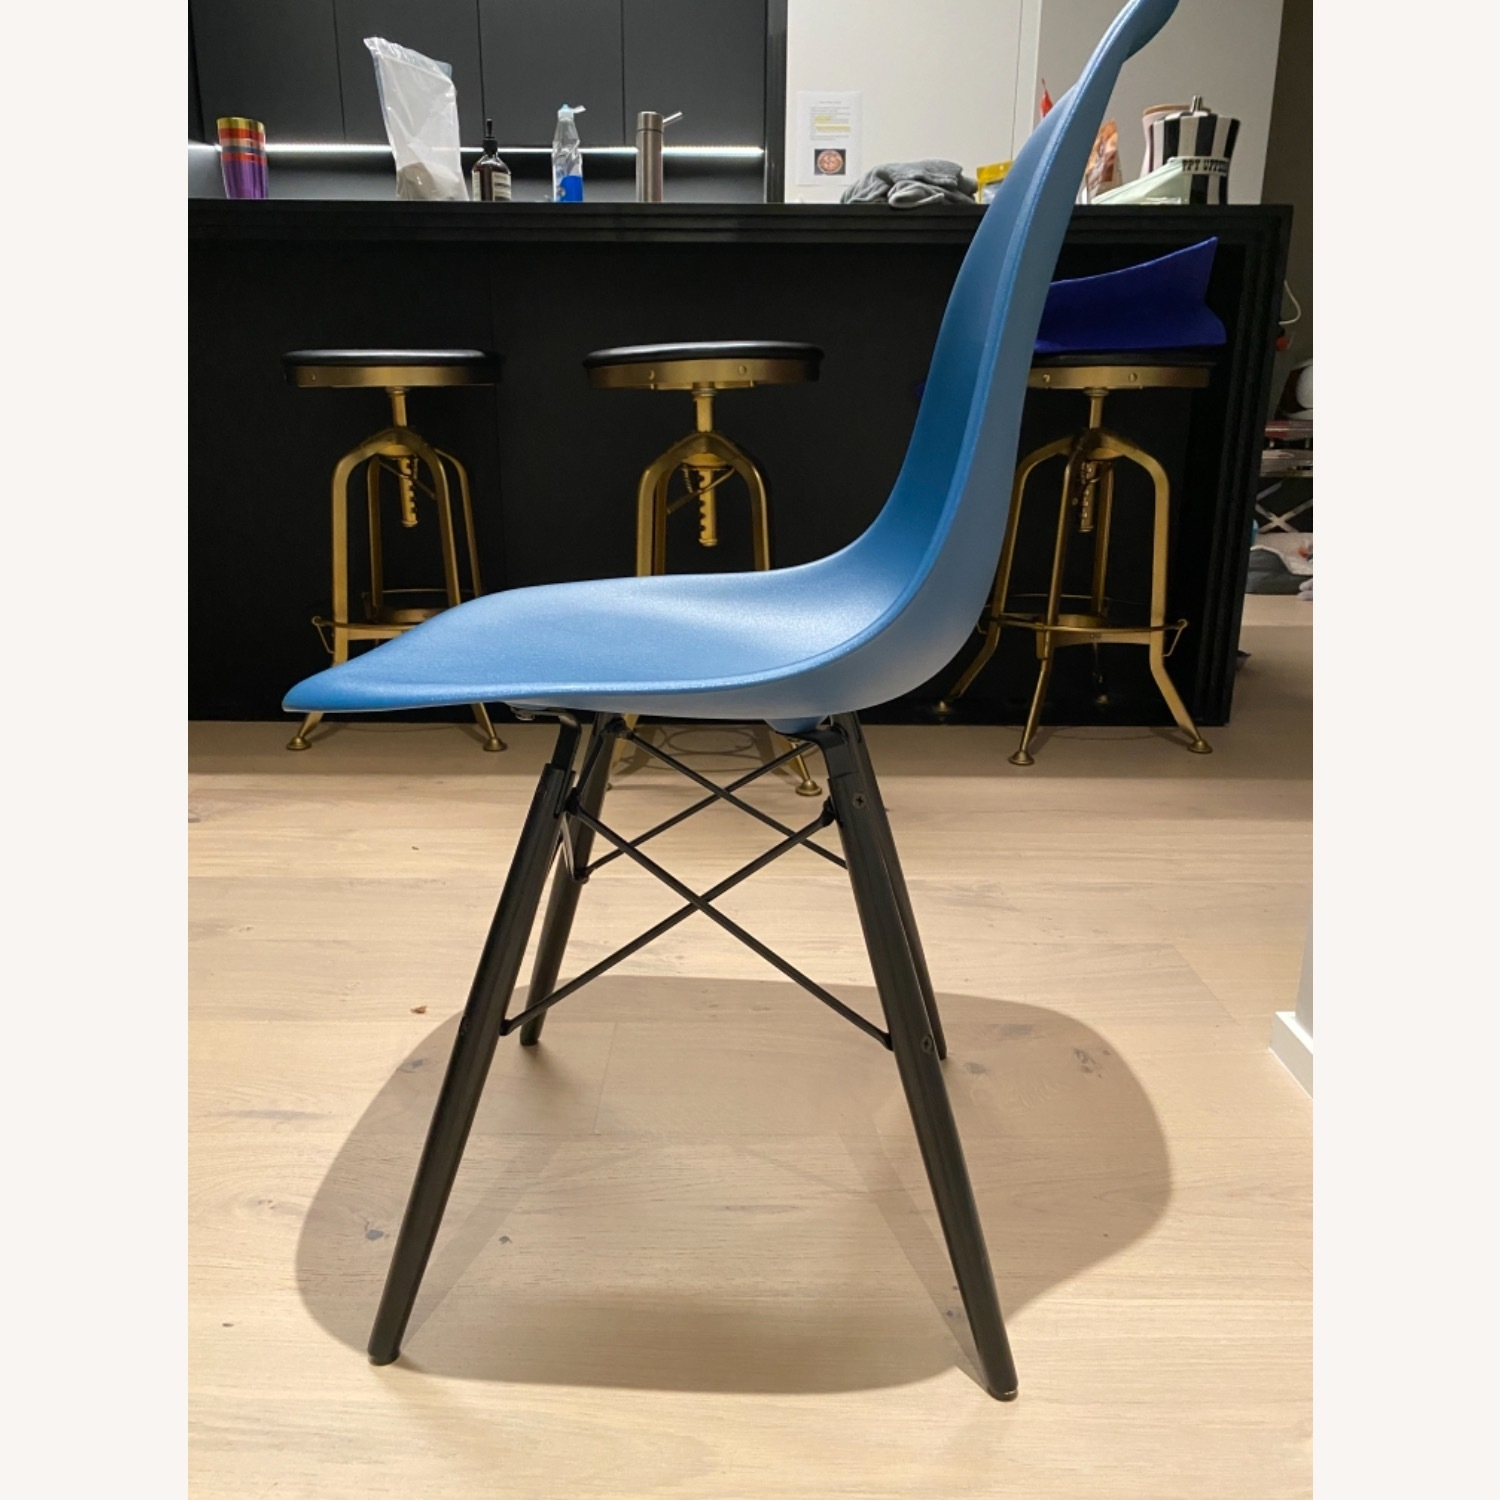 4 x Herman Miller Eames Molded Plastic Side Chair - image-6